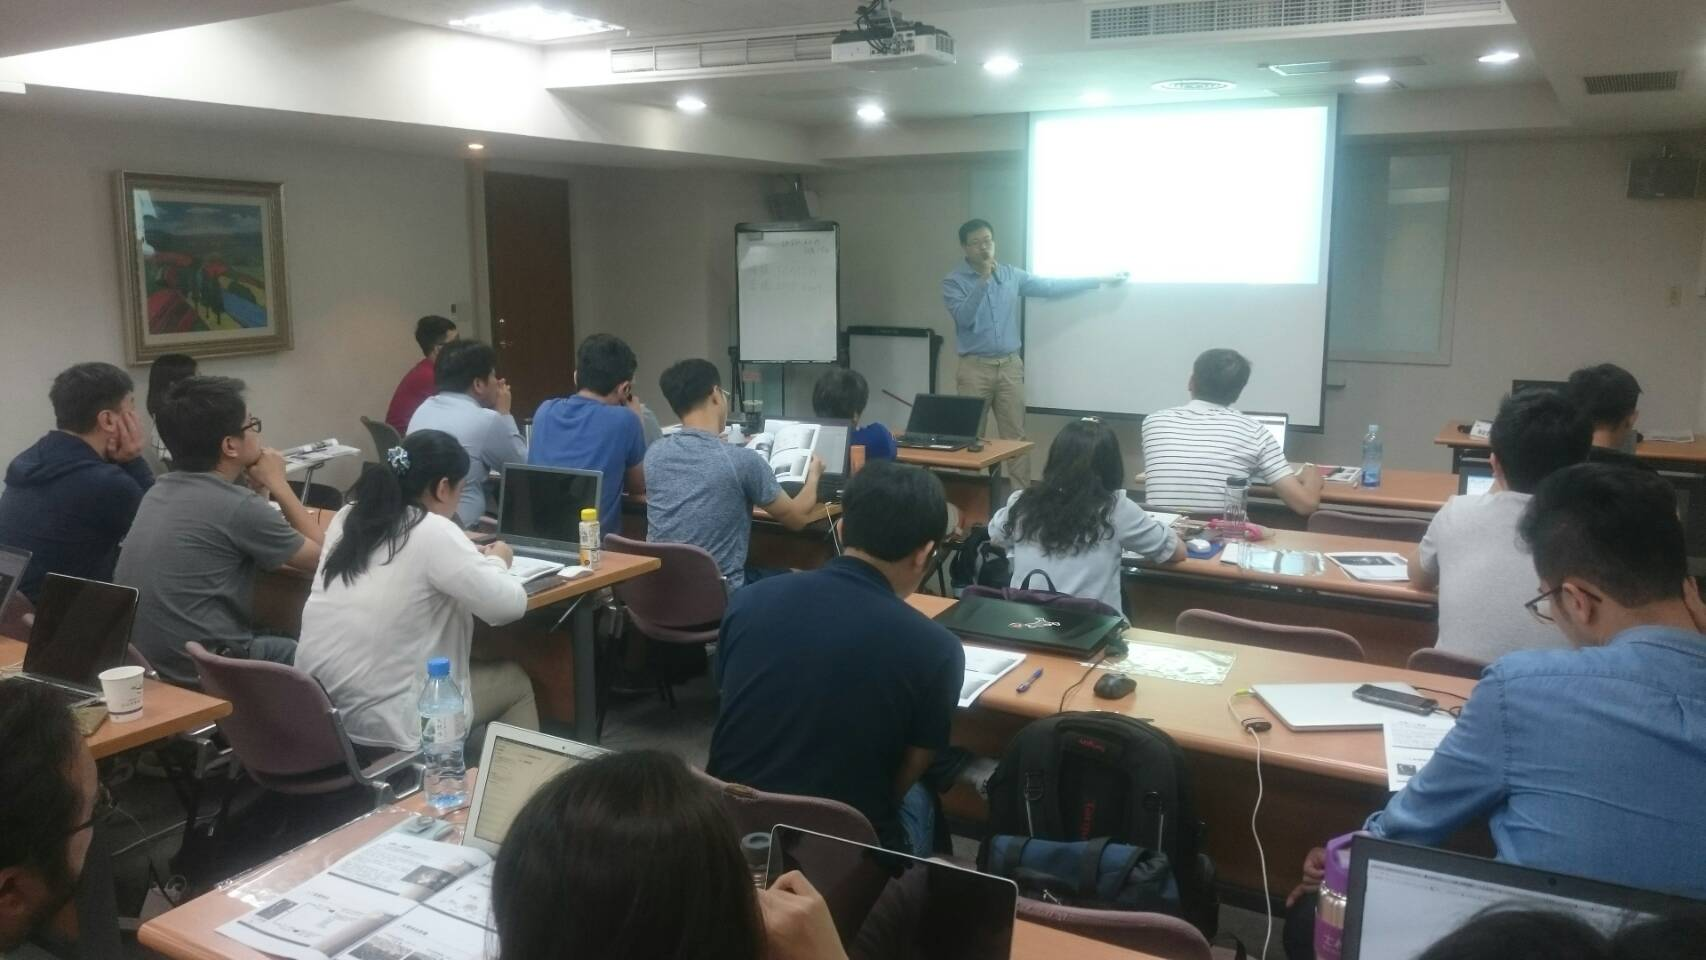 iABC Jointly Offering the First  Practical AI Training Course with Taipei Computer Association, and Fusion360.